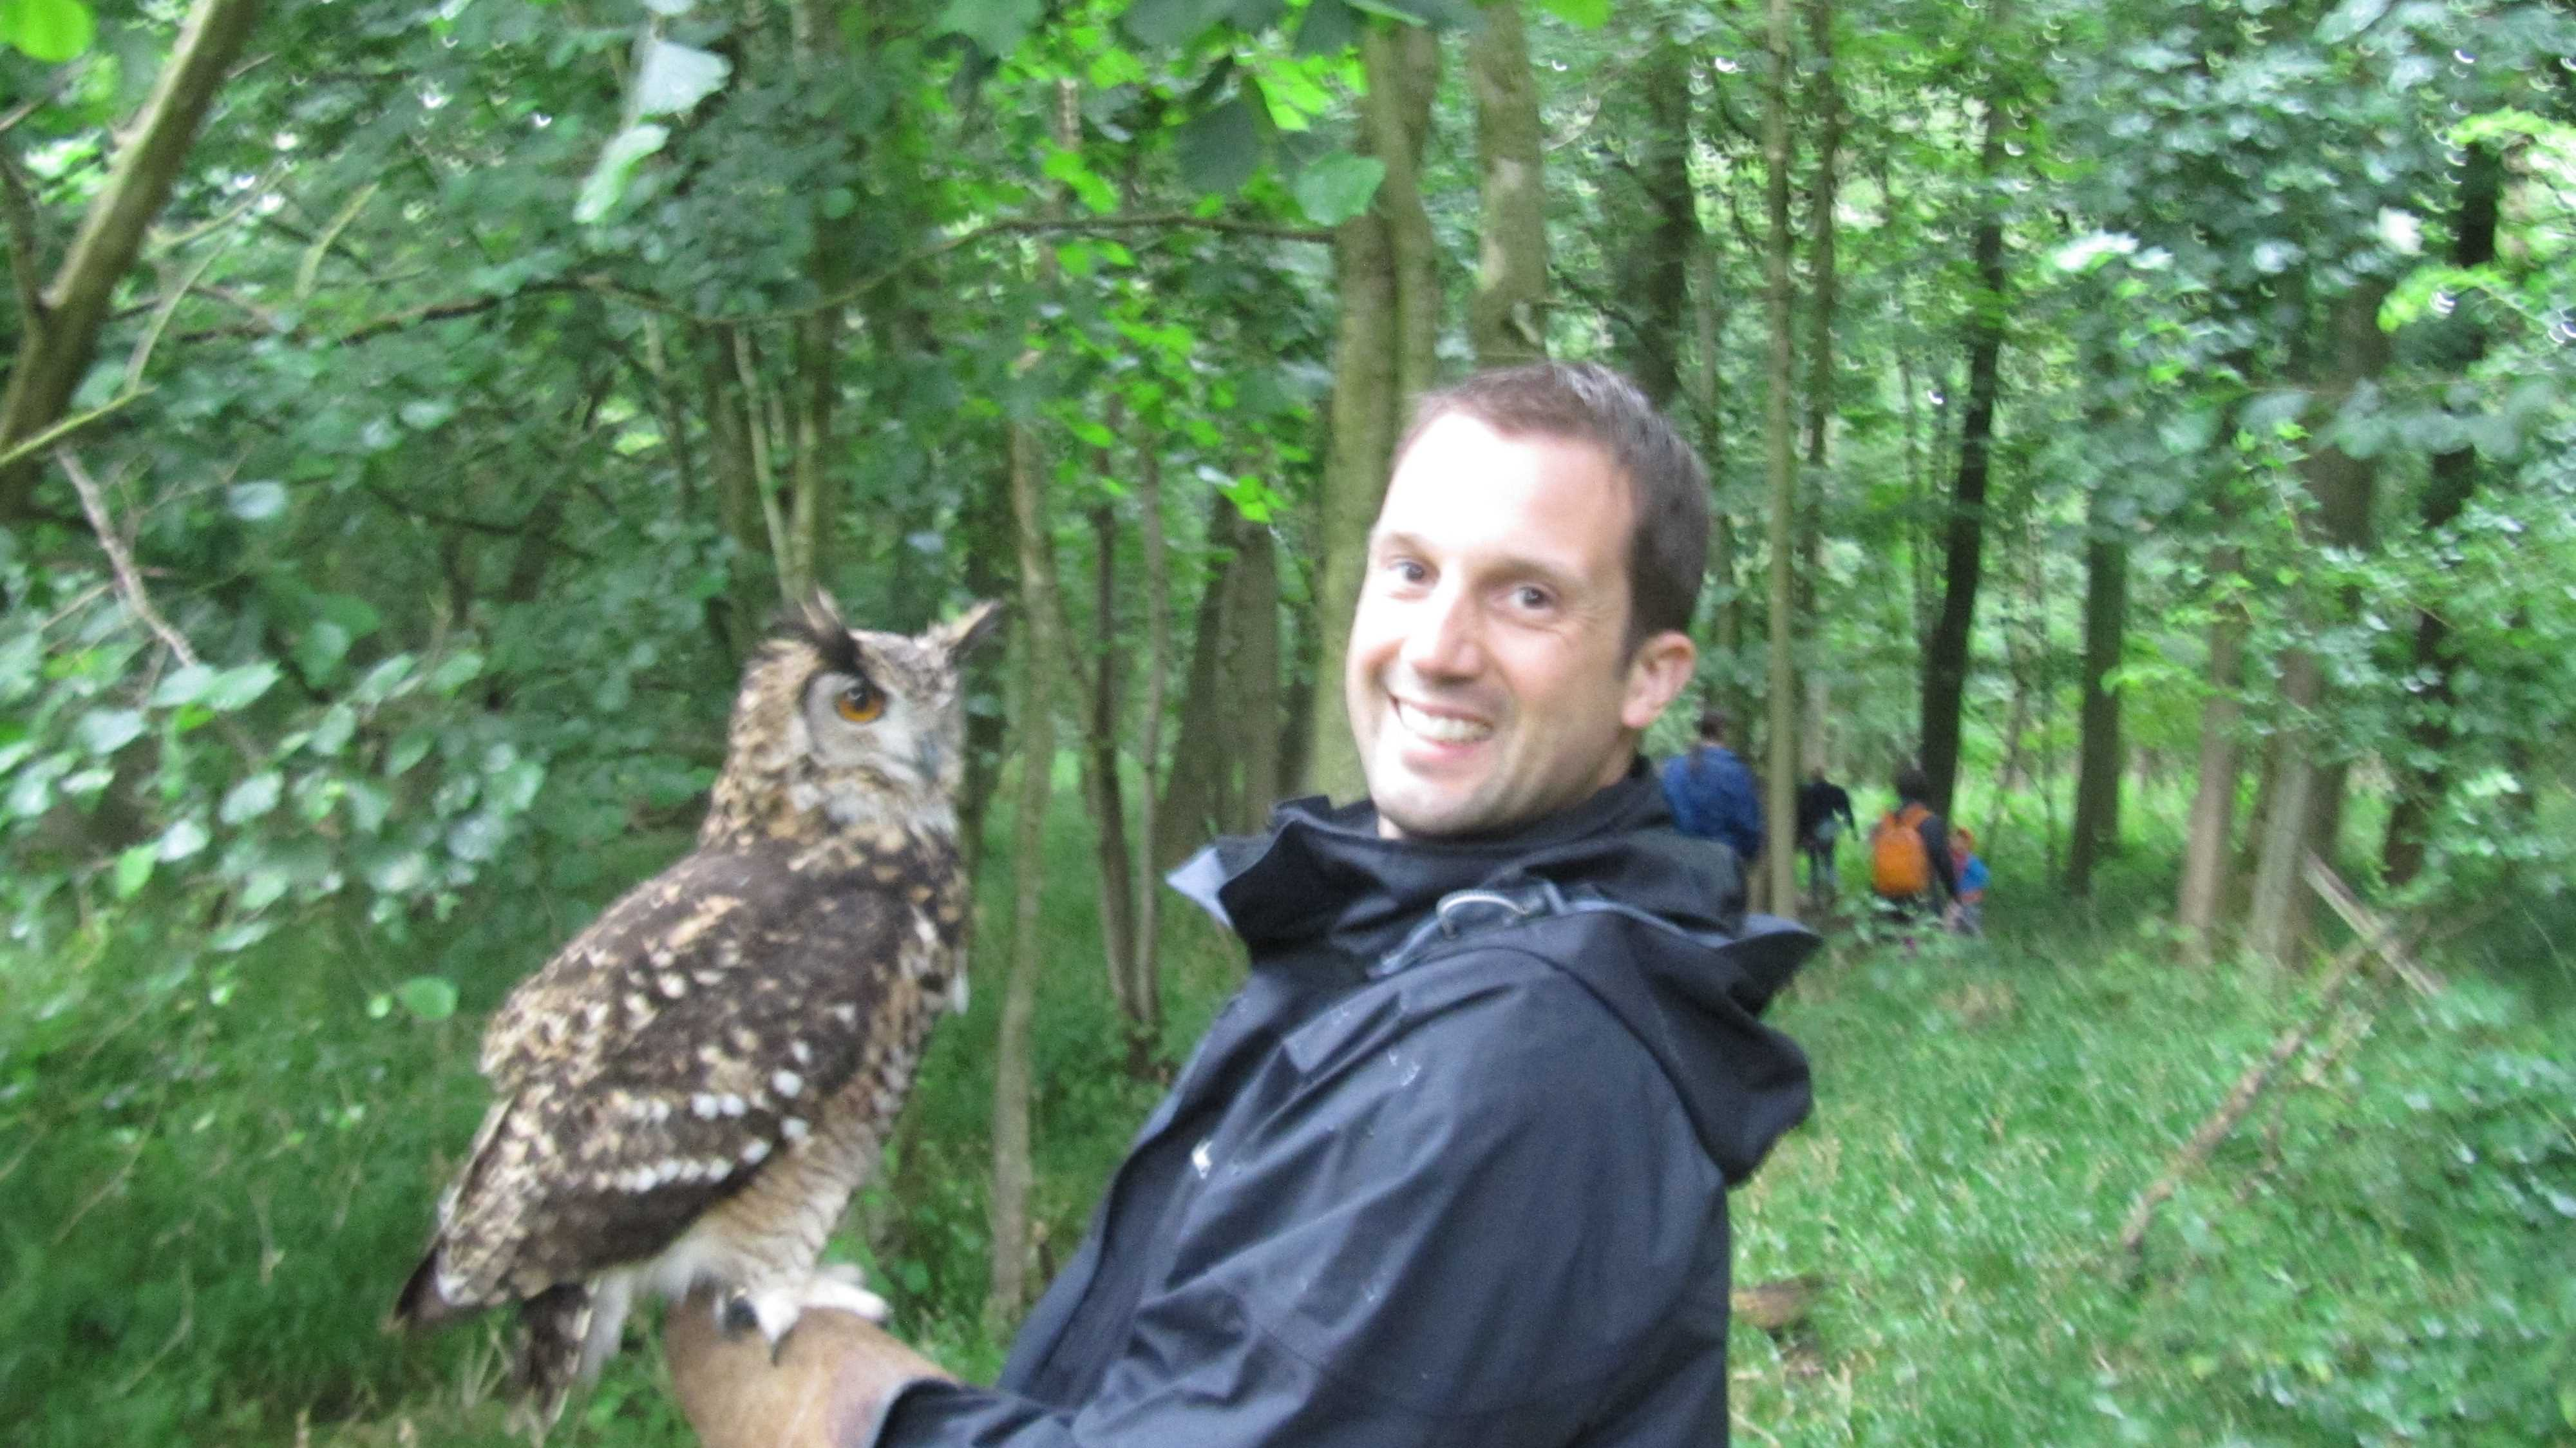 保護中: vol.7 The Rutand Falconry and Owl Centre